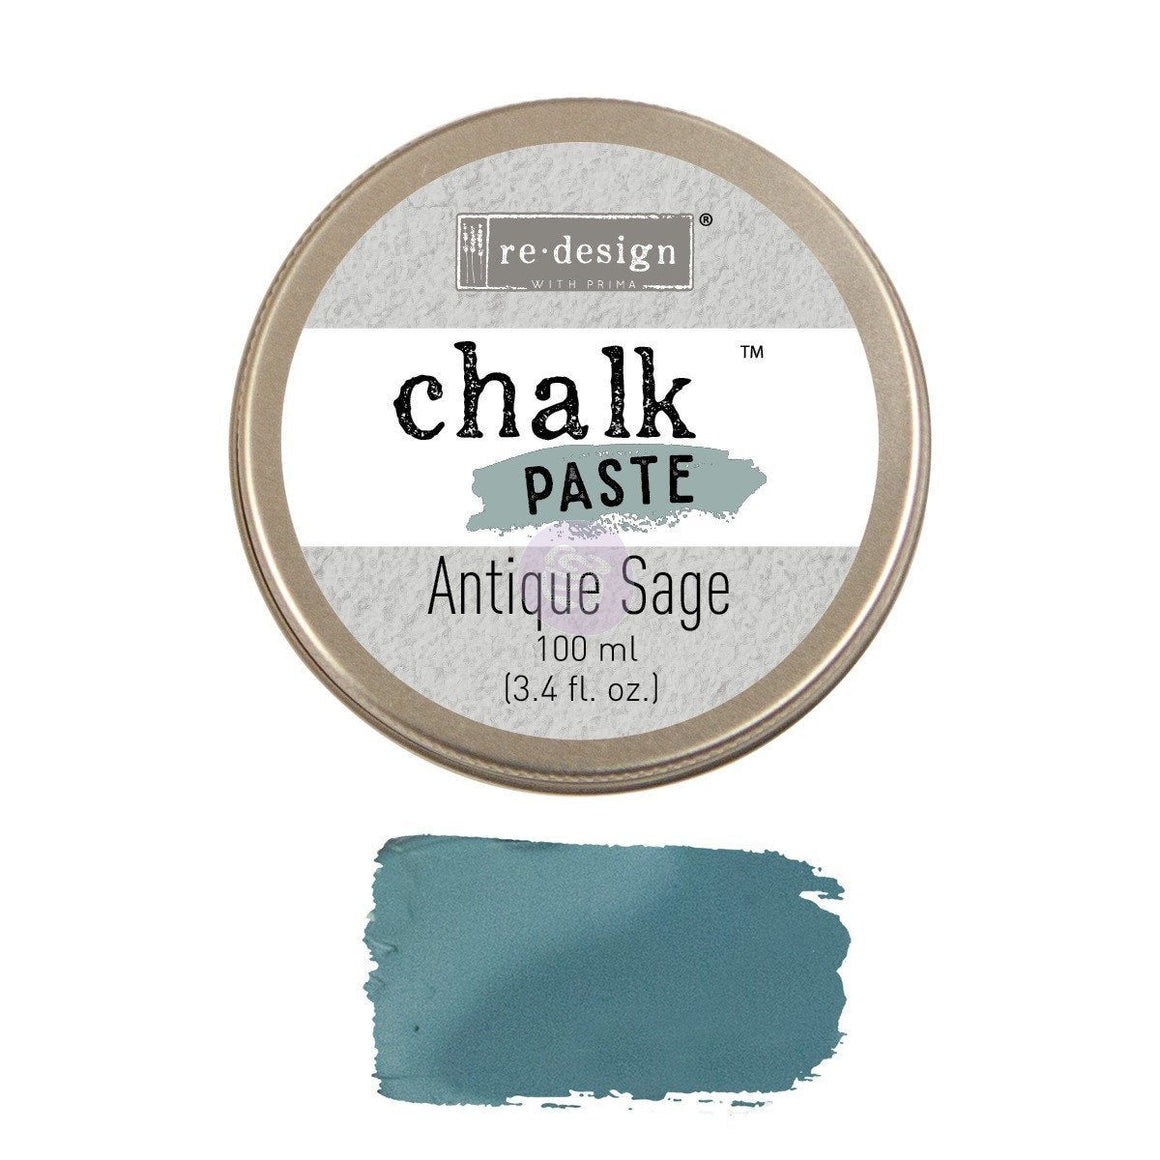 Antique Sage Chalk Paste by Redesign with Prima